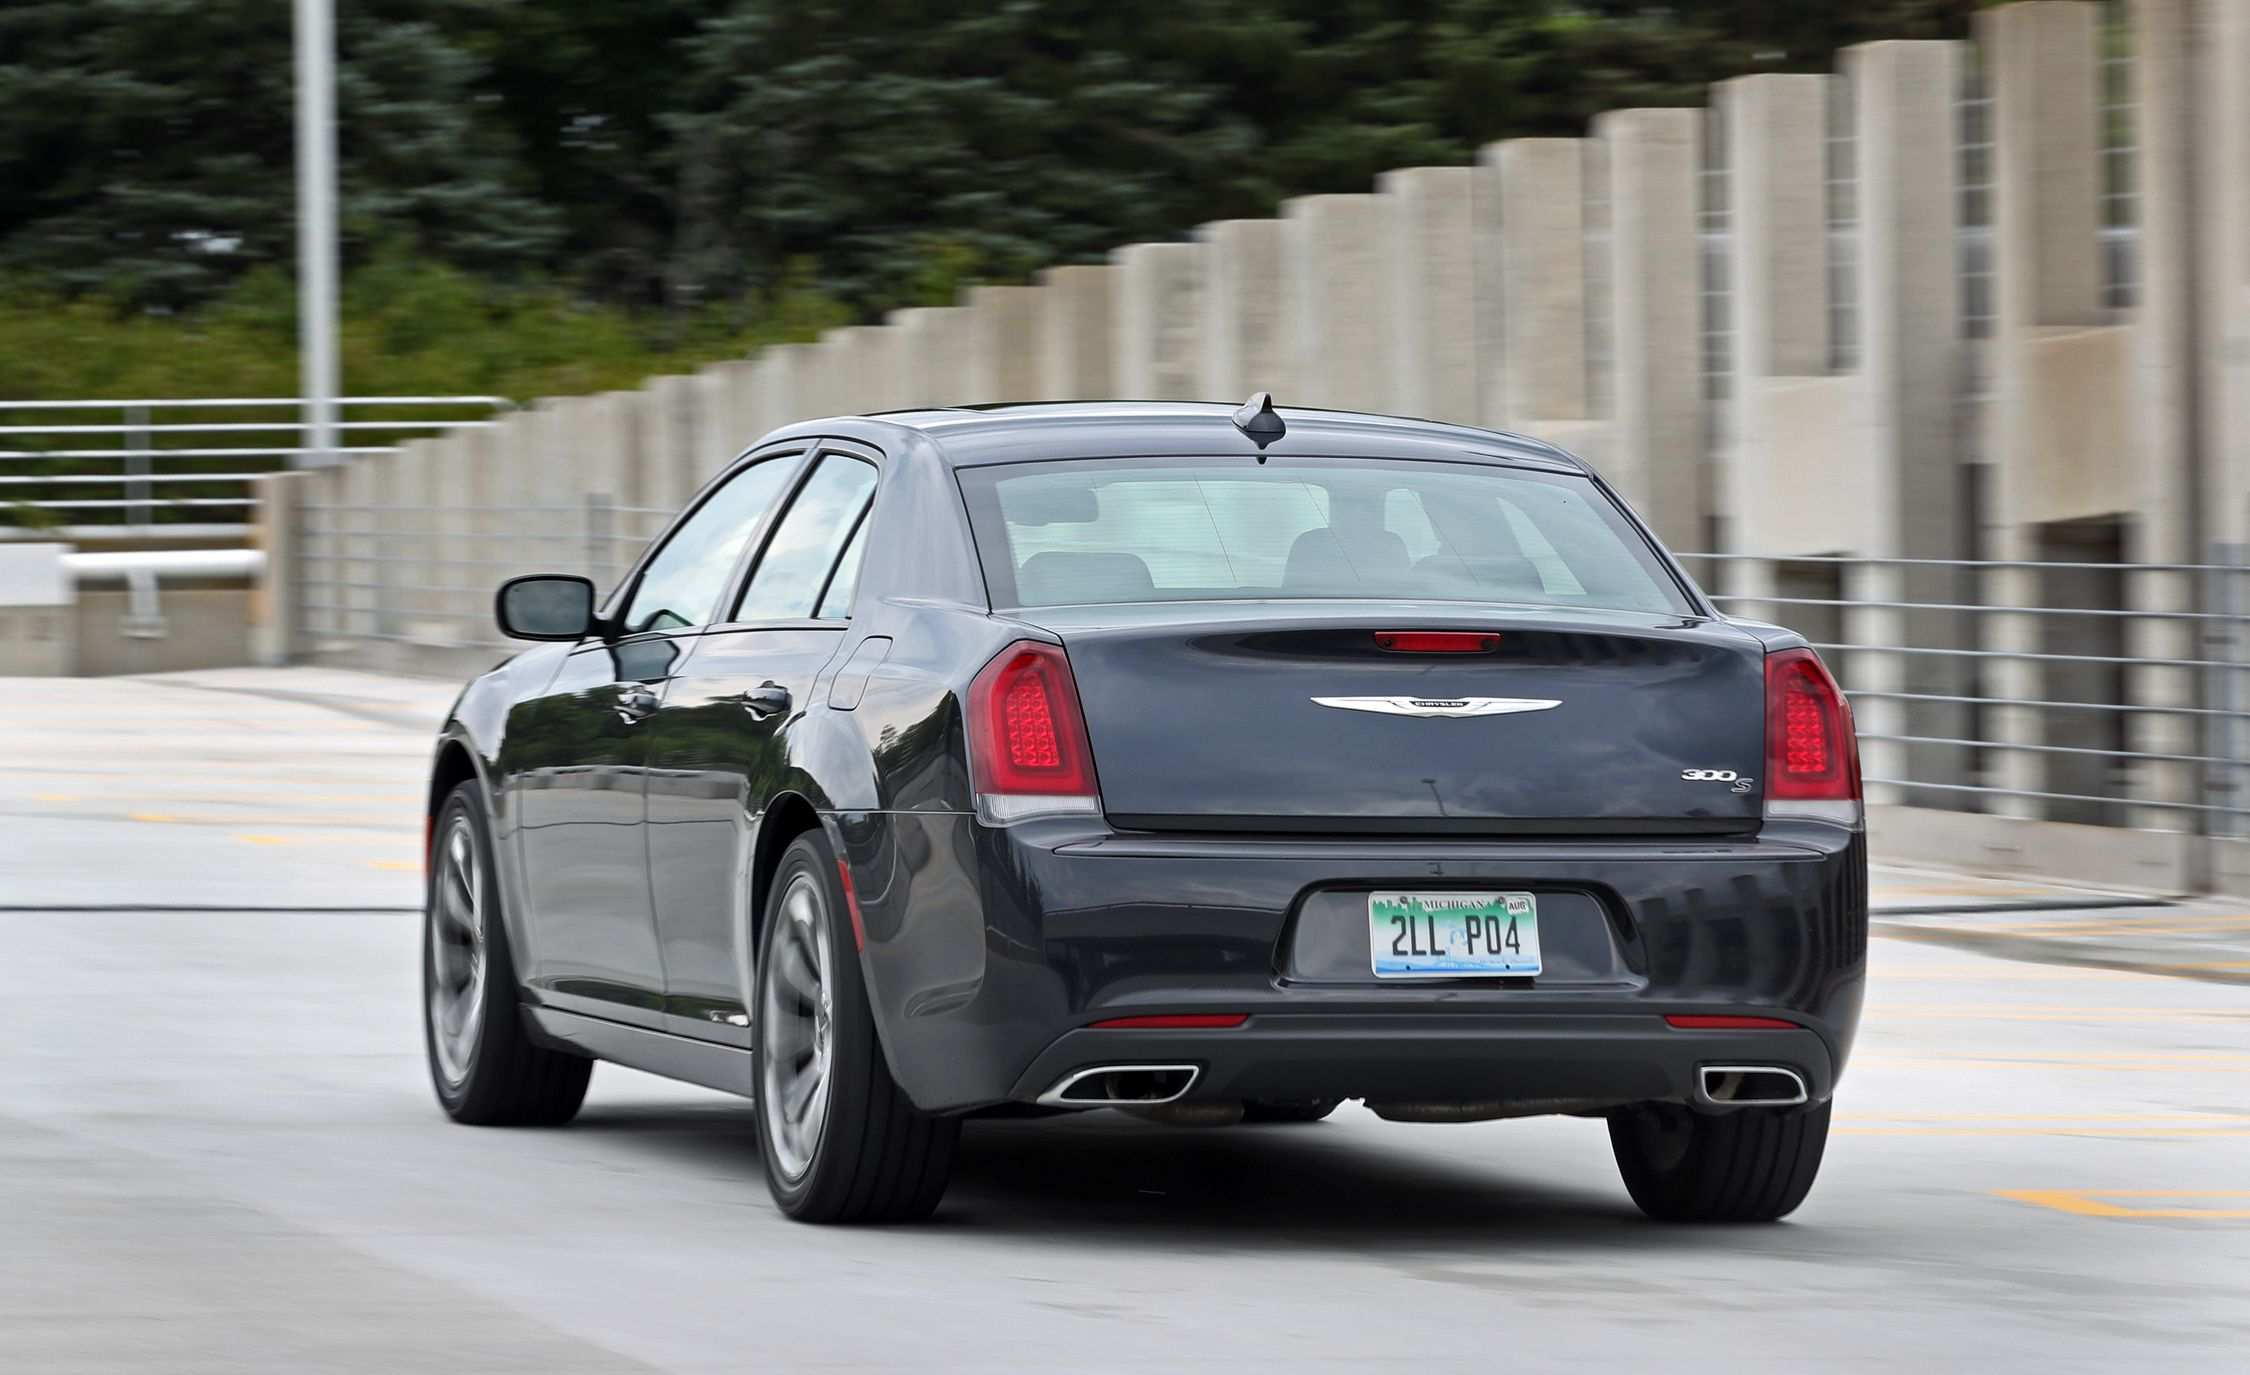 52 Concept of 2019 Chrysler 300 Review Rumors by 2019 Chrysler 300 Review